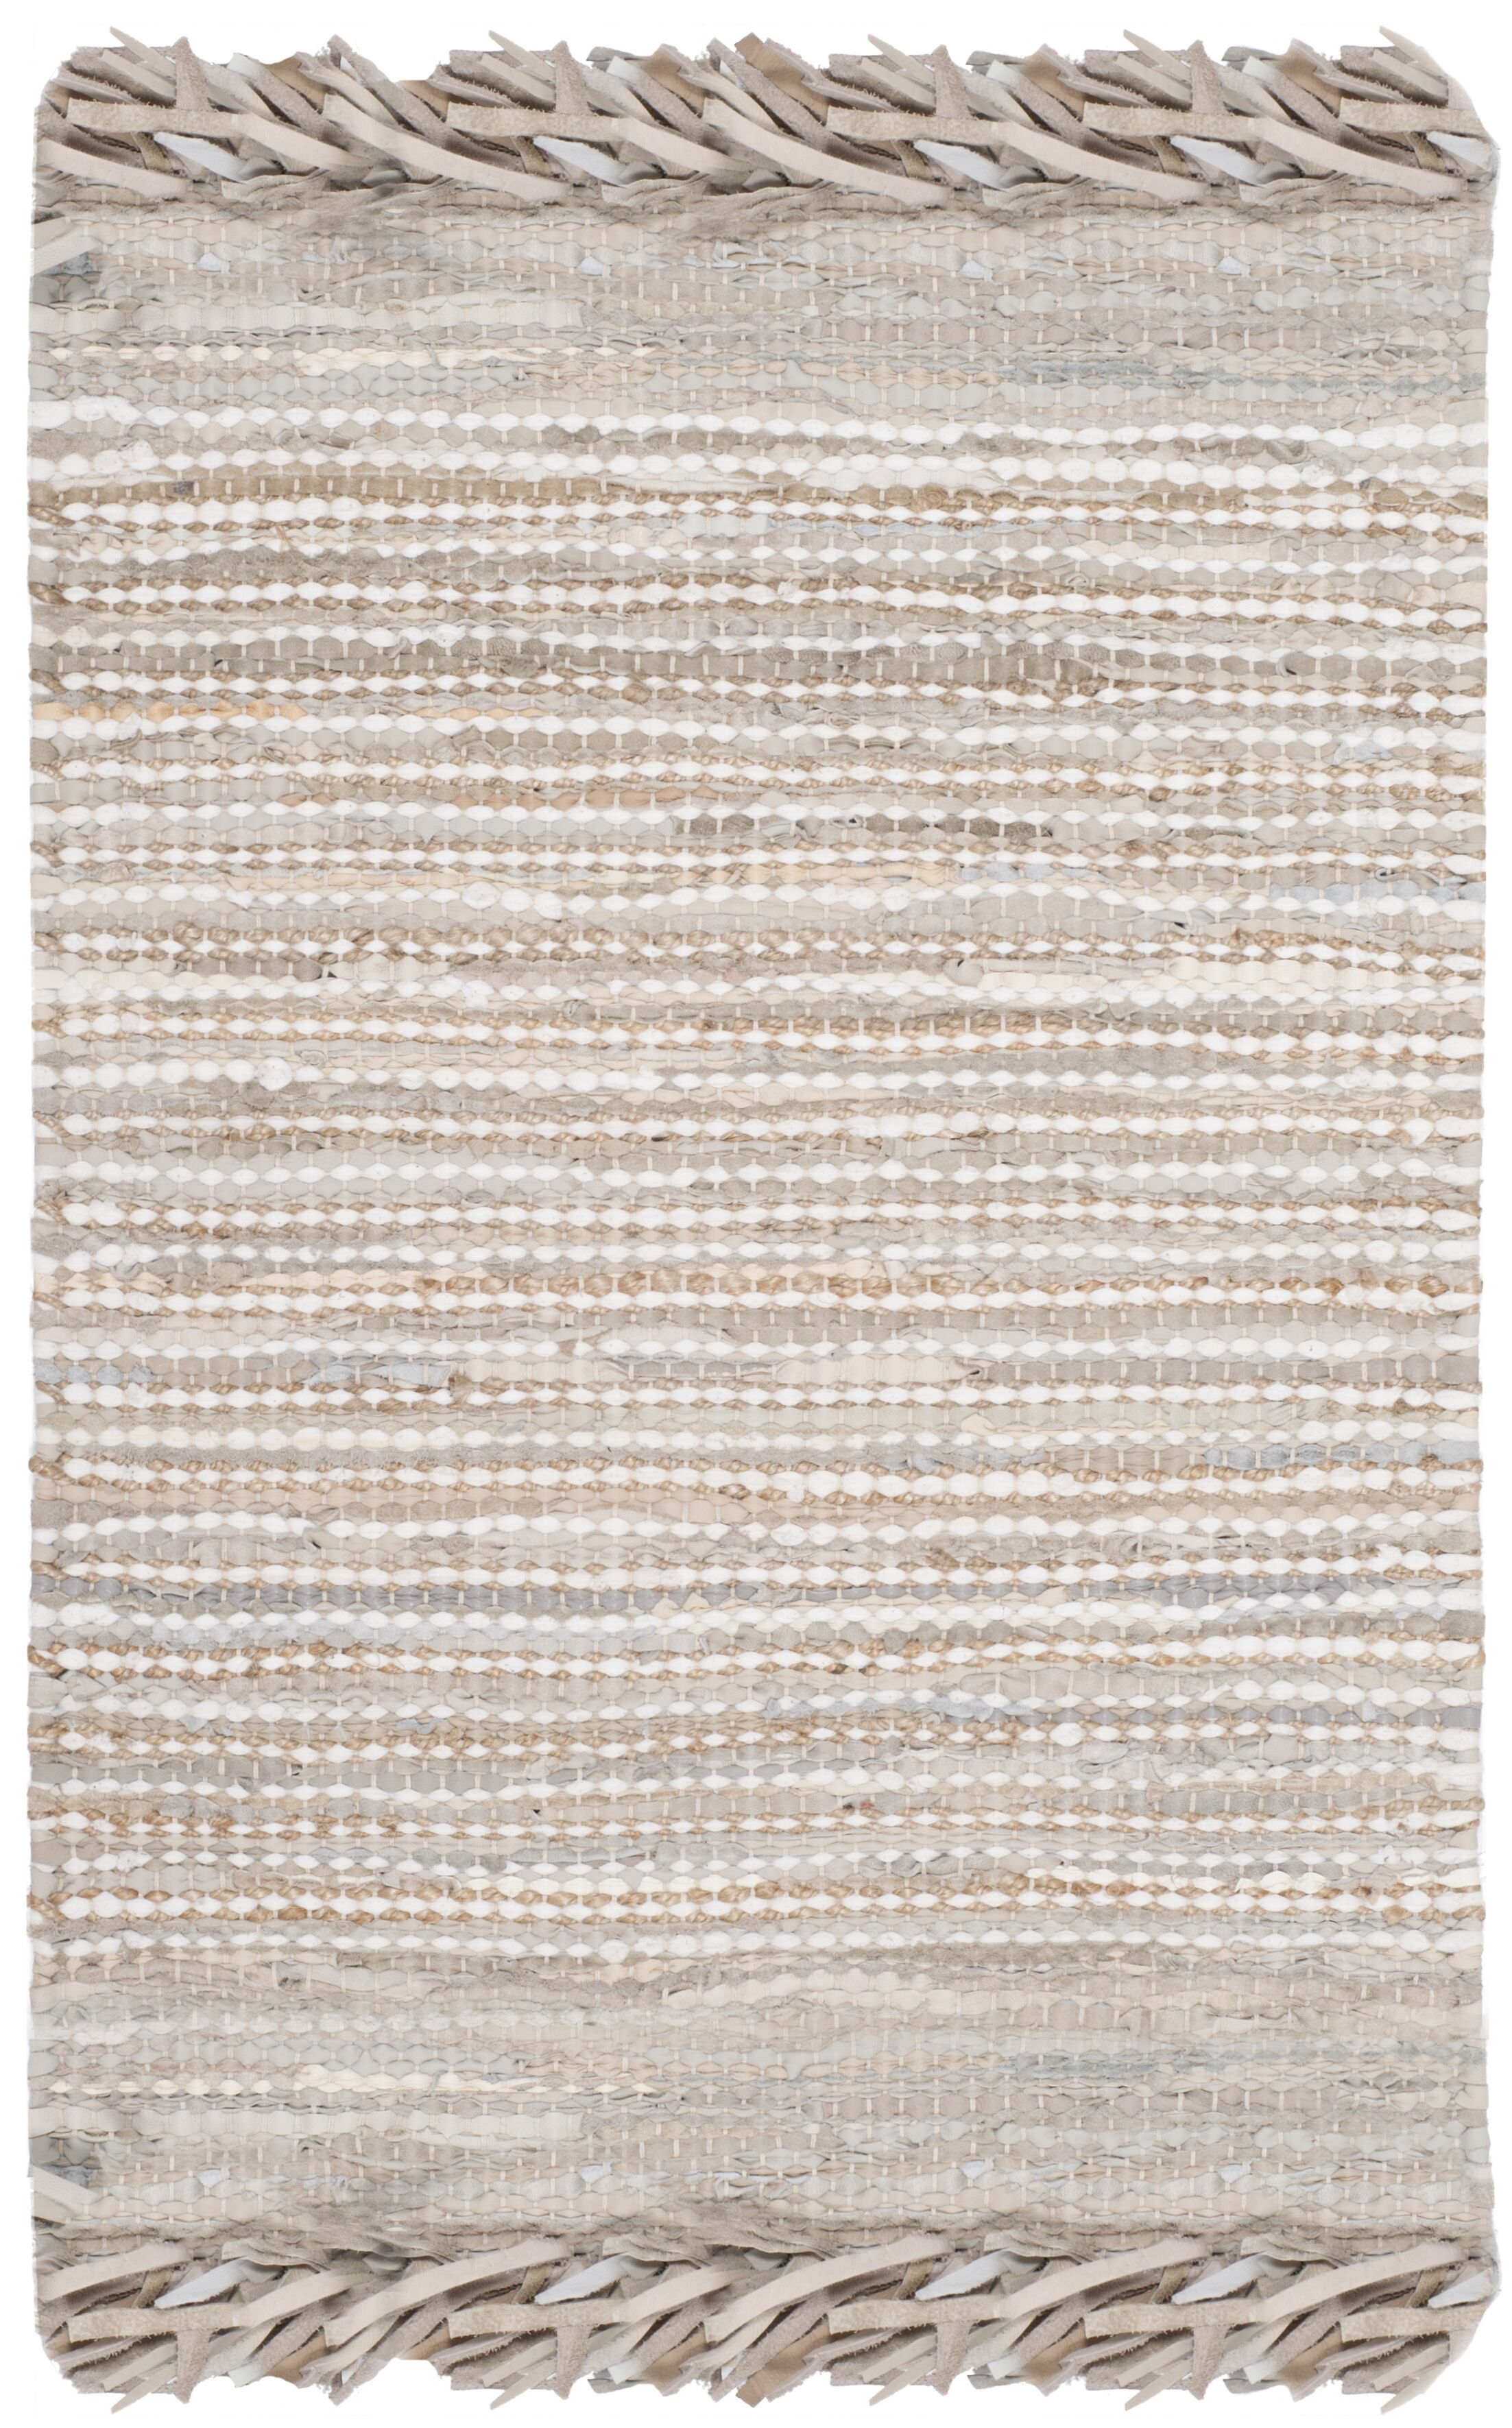 Glostrup Flat Woven Beige Area Rug Rug Size: Rectangle 8' x 10'